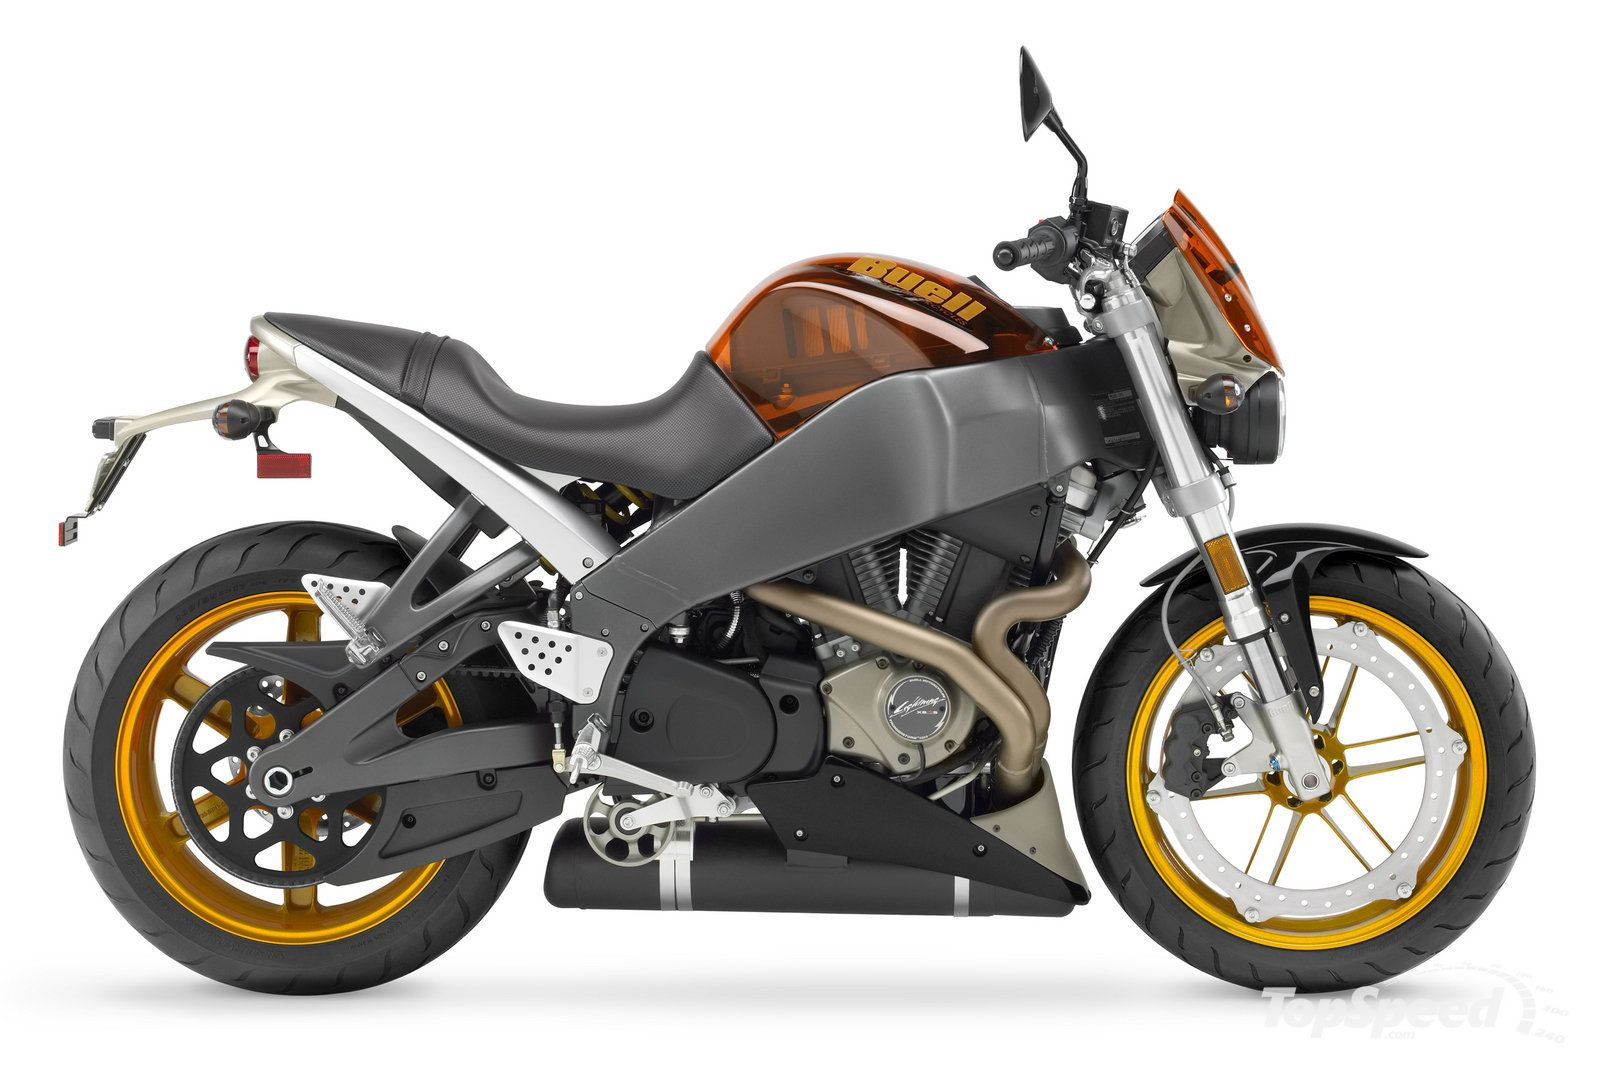 2006 Buell Lightning Xb12scg Pictures Photos Wallpapers Top Speed Buell Motorcycles Buell Cafe Racer Sportster Cafe Racer